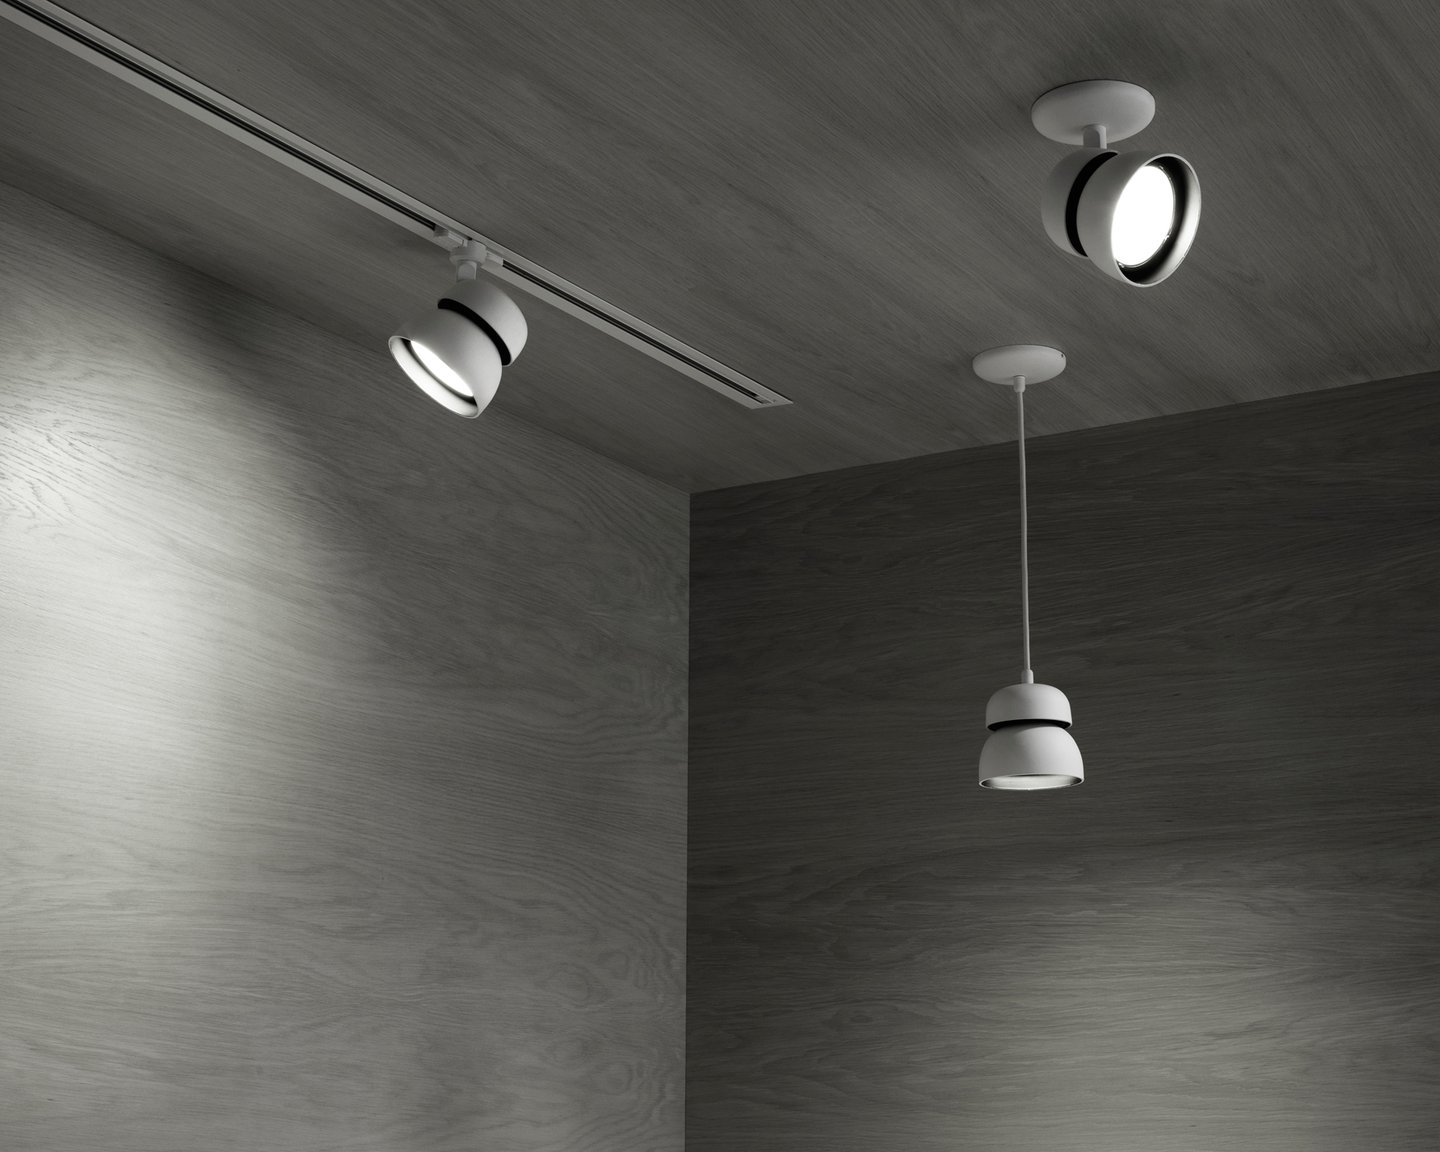 Image: uploads/2017_03/Resident-Echo-Light-by-Flynn-Talbot-2.jpg